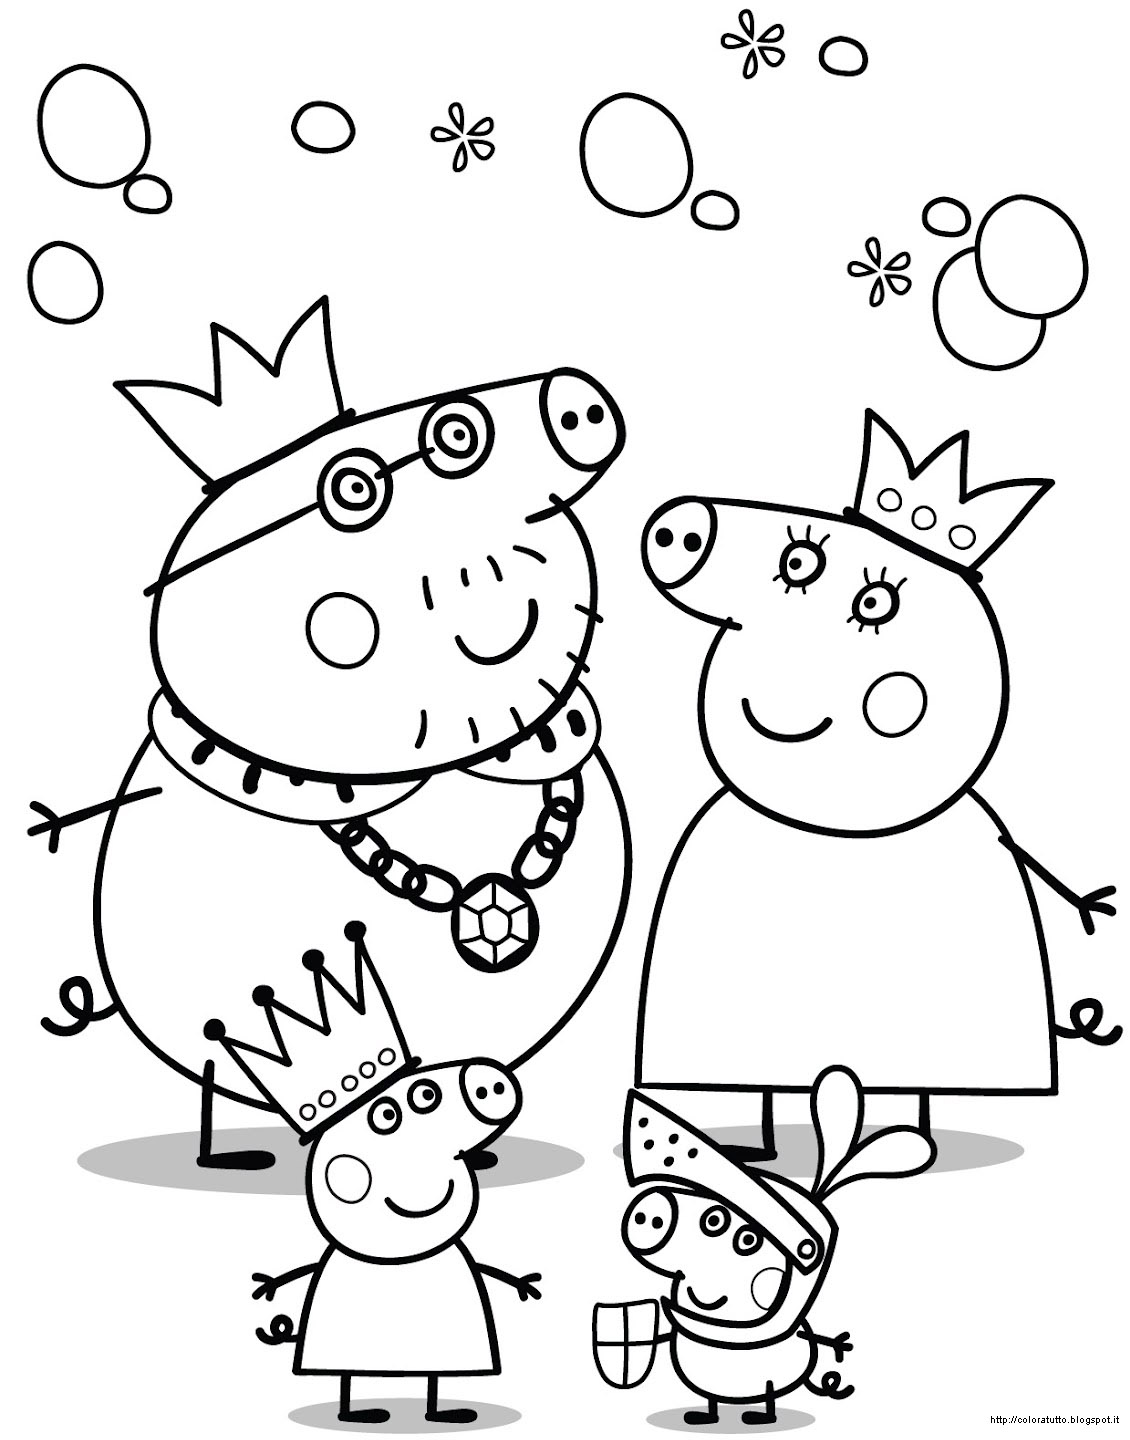 Dessin de peppa pig - Coloriages peppa pig ...